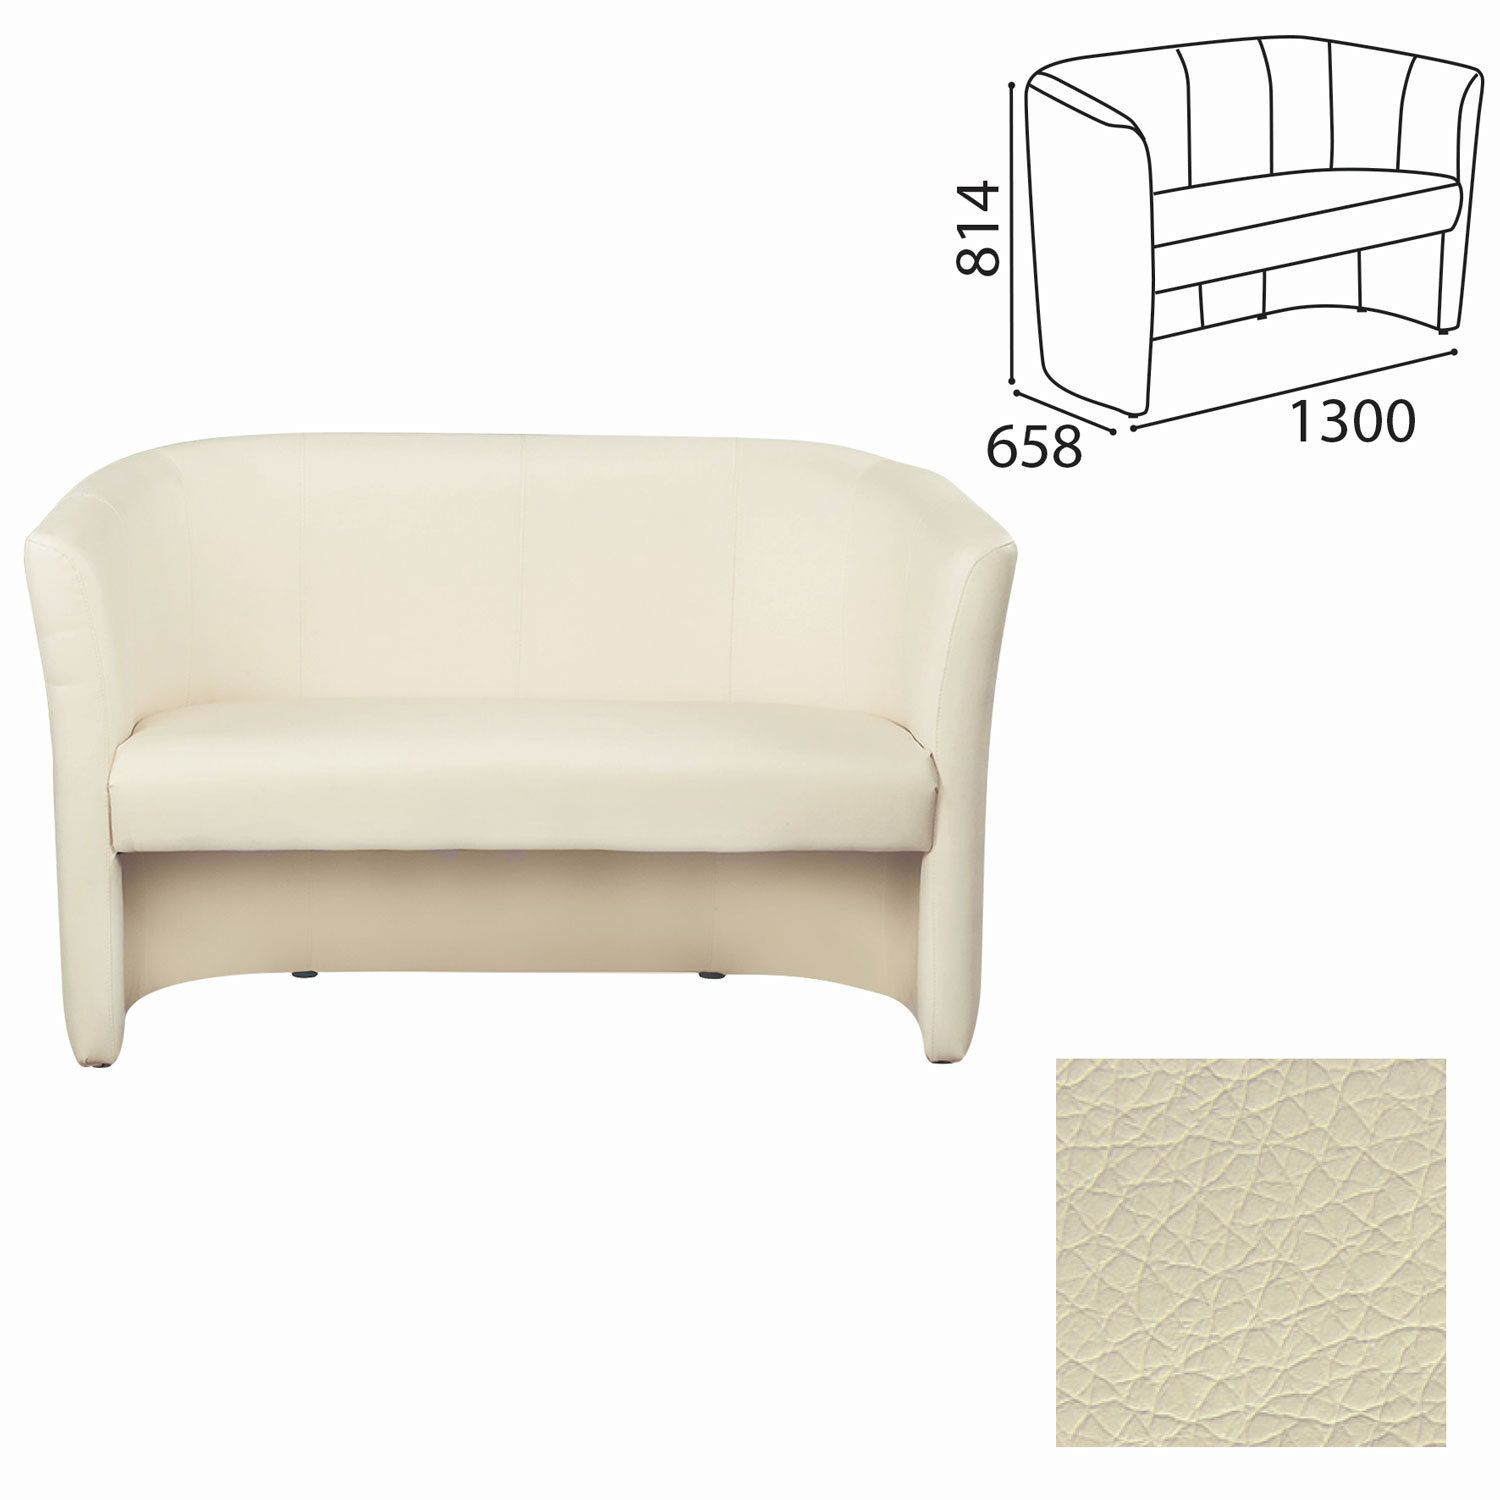 """NOWY STYL / Double sofa """"Club Duo"""", 814х1300х658 mm, with armrests, leatherette, beige"""